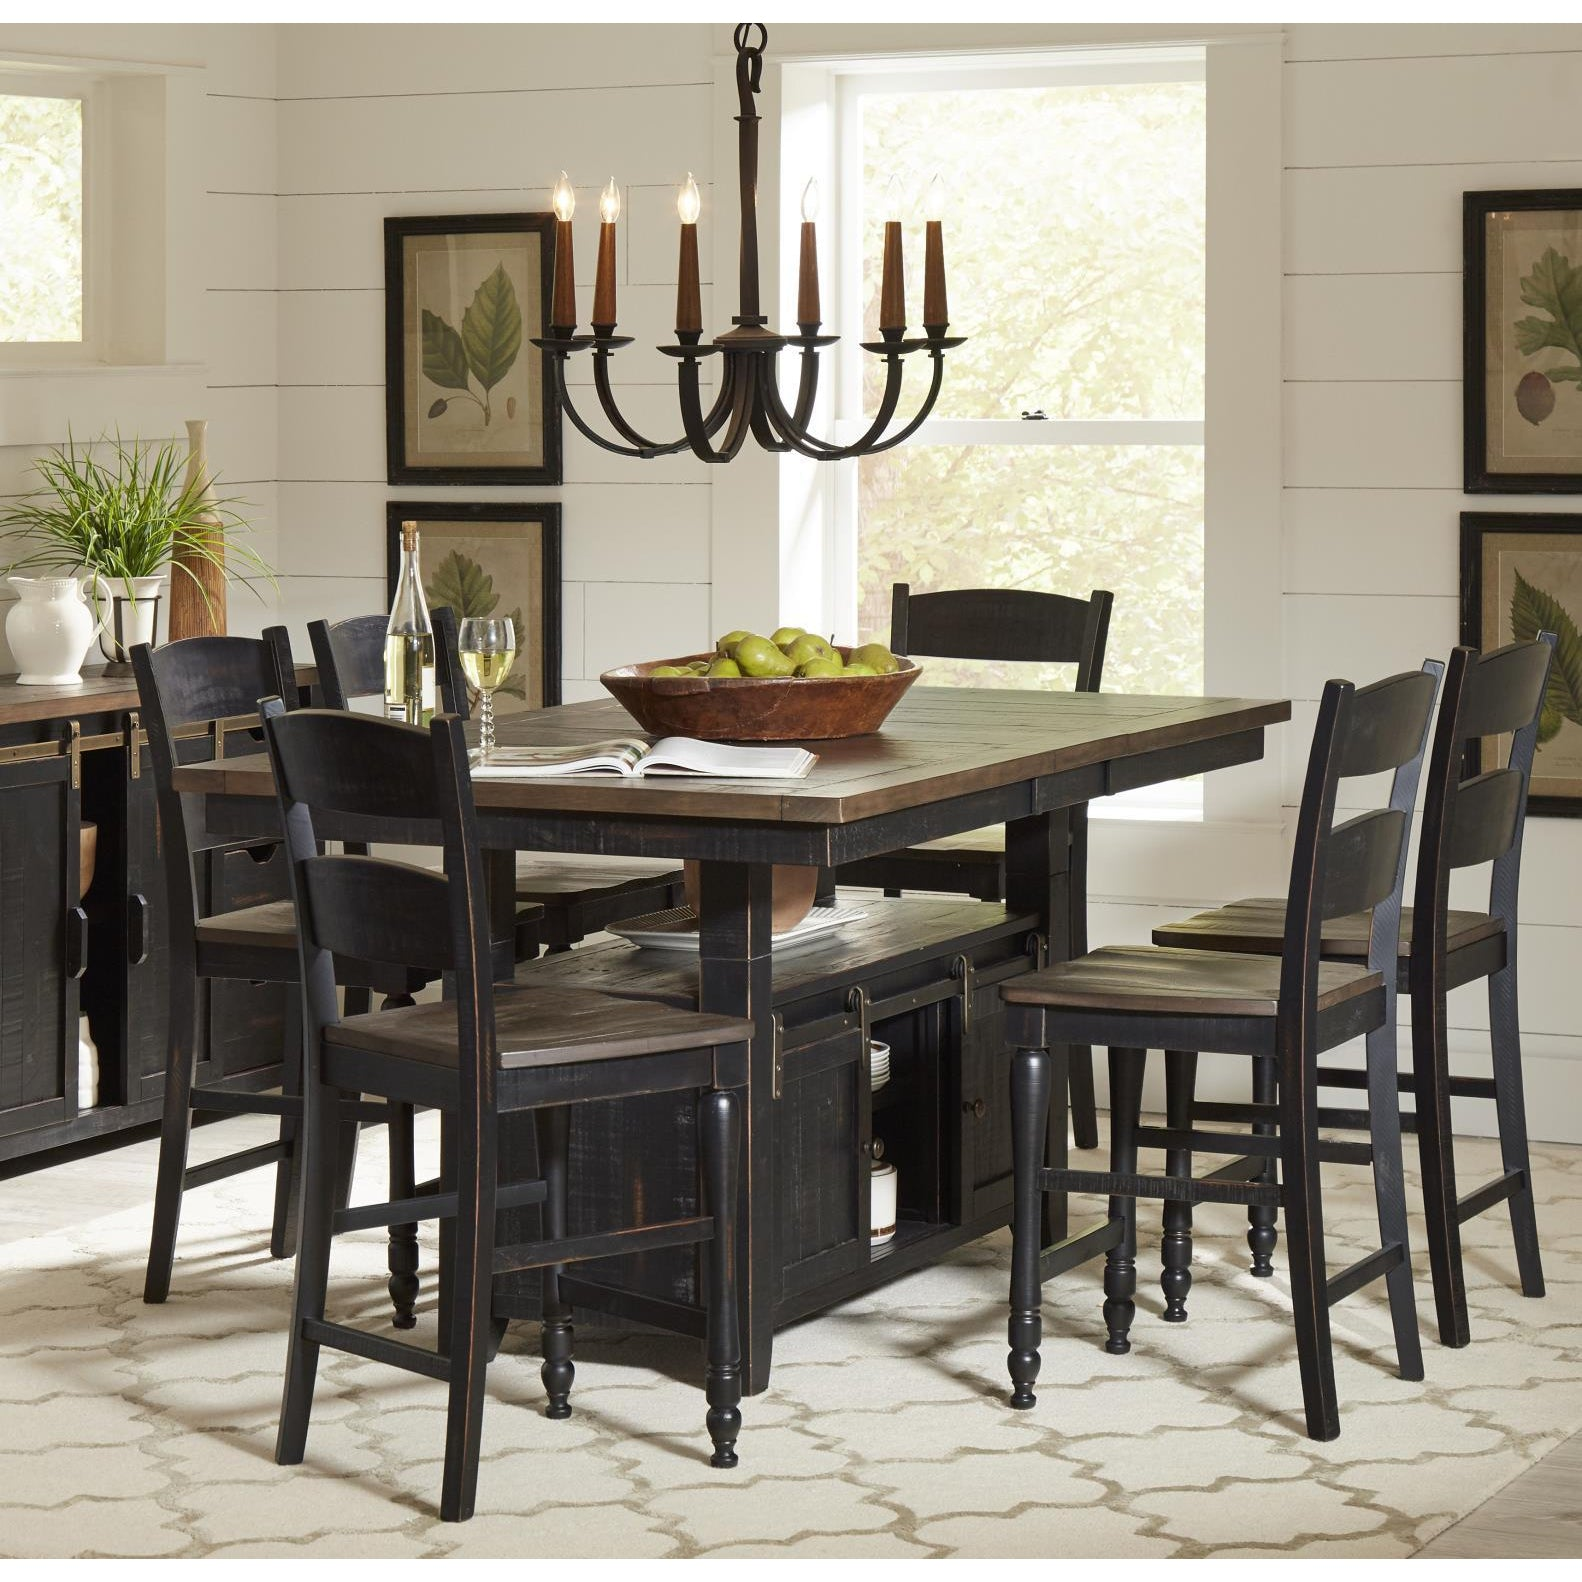 Urban Loft 7-Piece Adjustable Height Dining Set